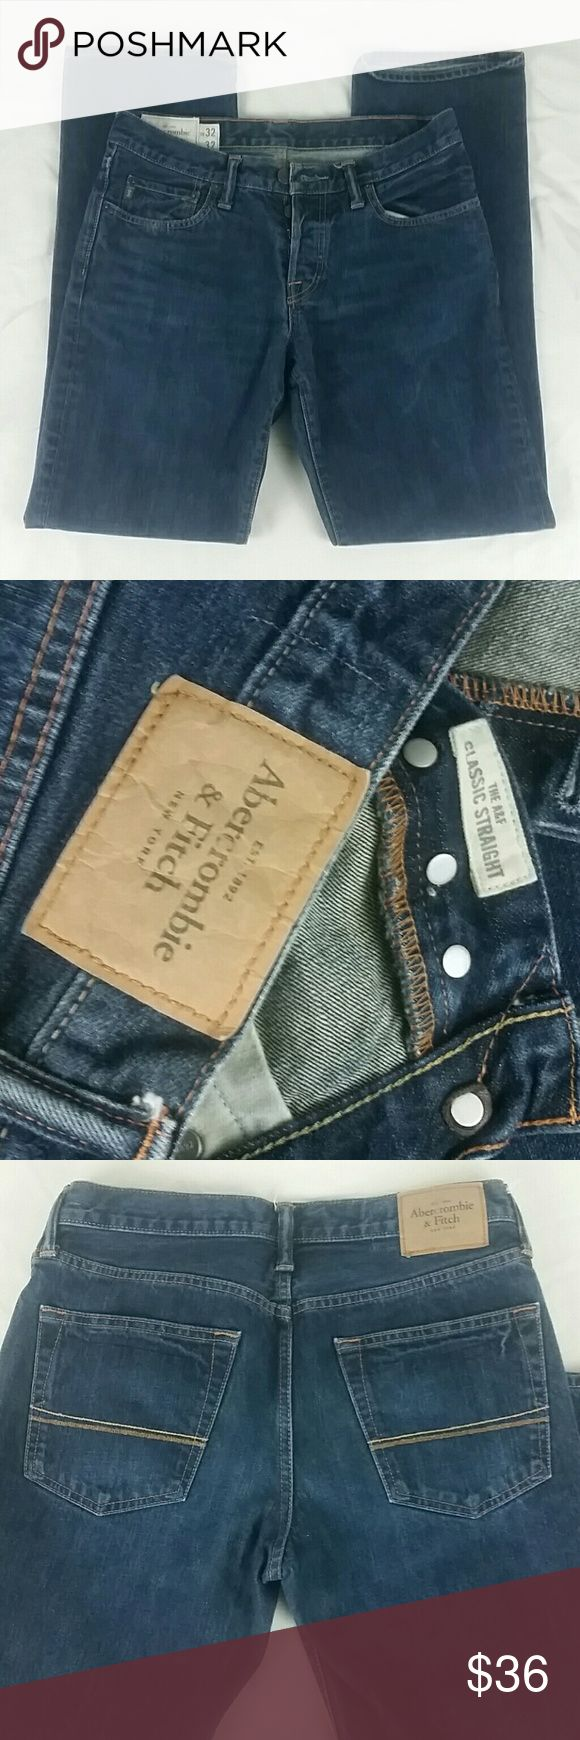 Abercrombie & Fitch button fly jeans 32?32 Abercrombie & Fitch button fly jeans   32?32 Classic Straight leg, dark wash. Abercrombie & Fitch Jeans Straight